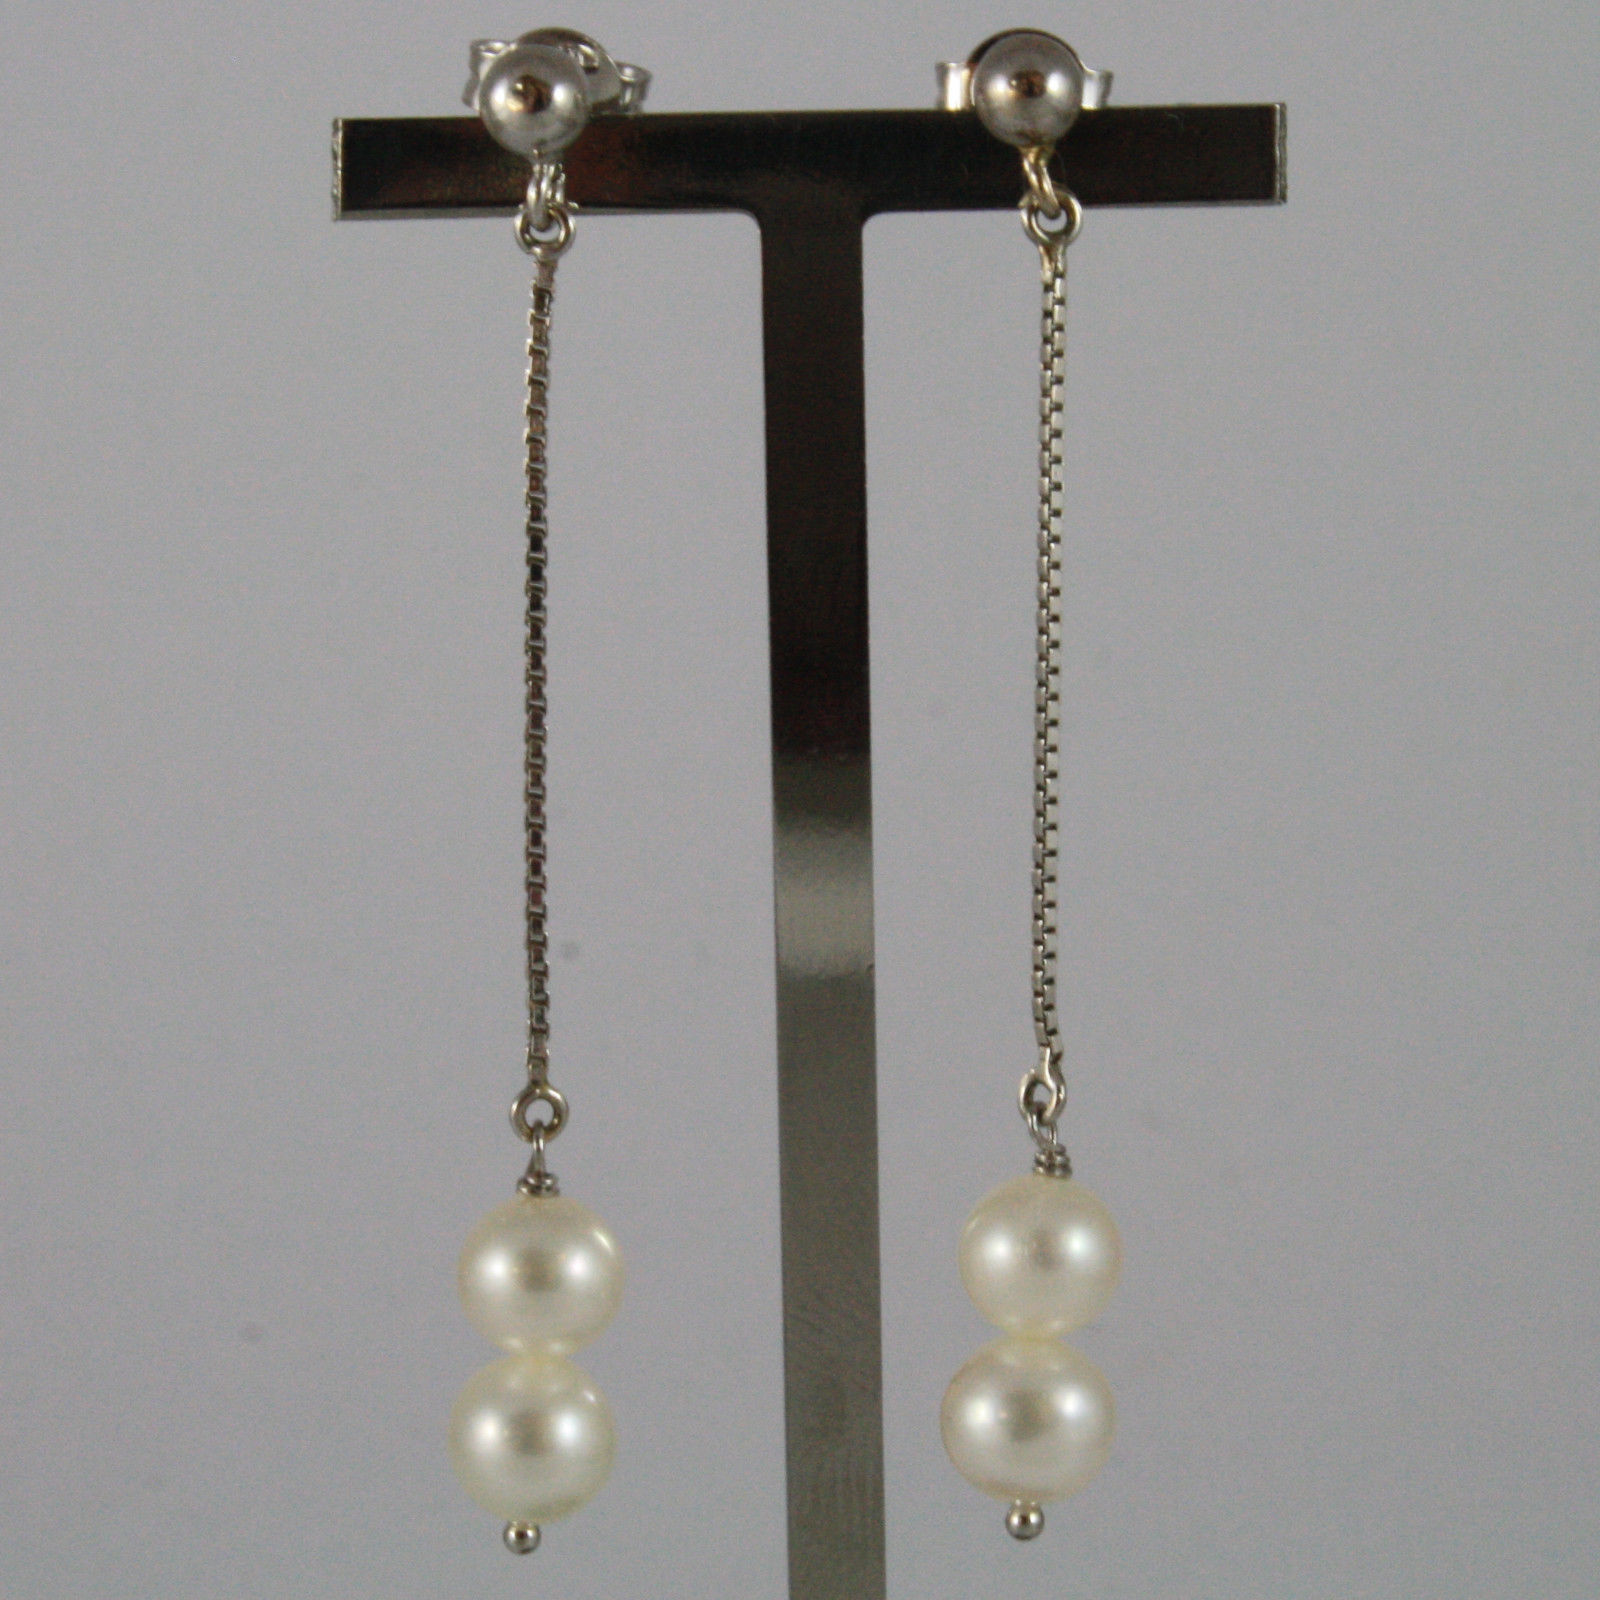 SOLID 18K WHITE GOLD PENDANTS EARRINGS WITH FRESHWATER WHITE PEARL MADE IN ITALY